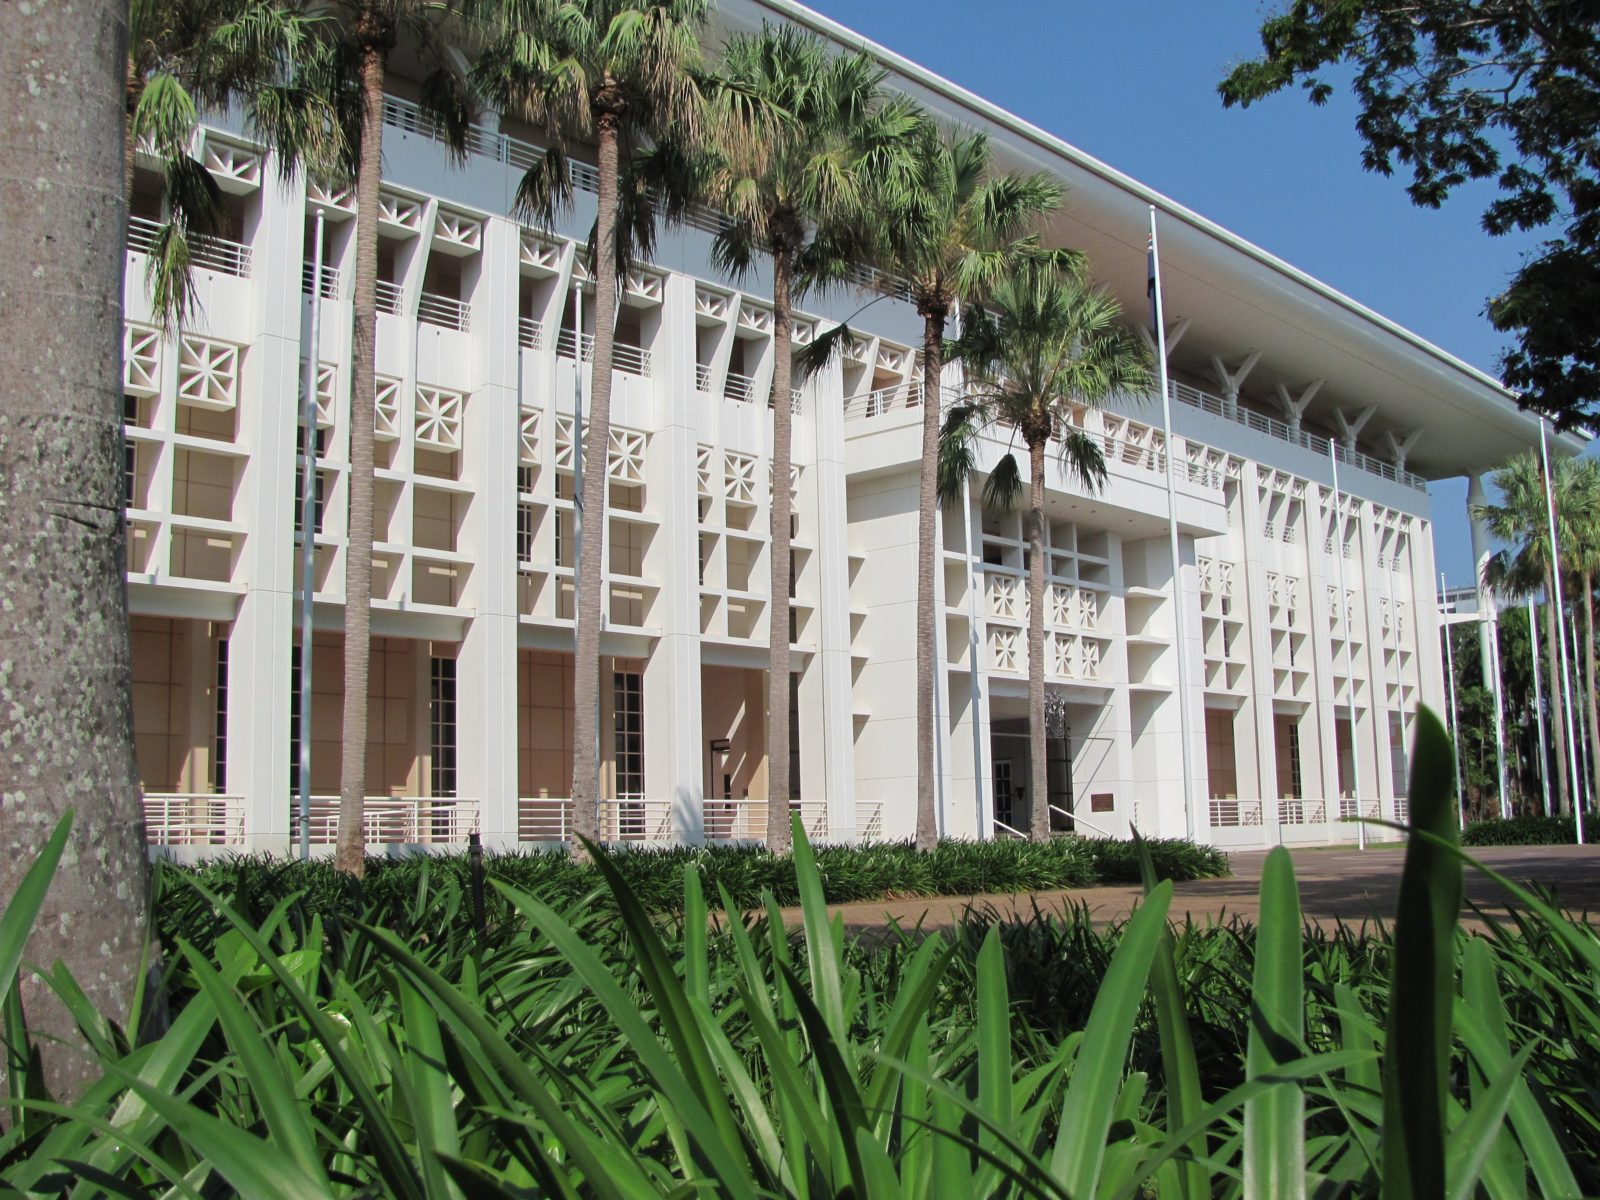 Northern Territory Parliament House